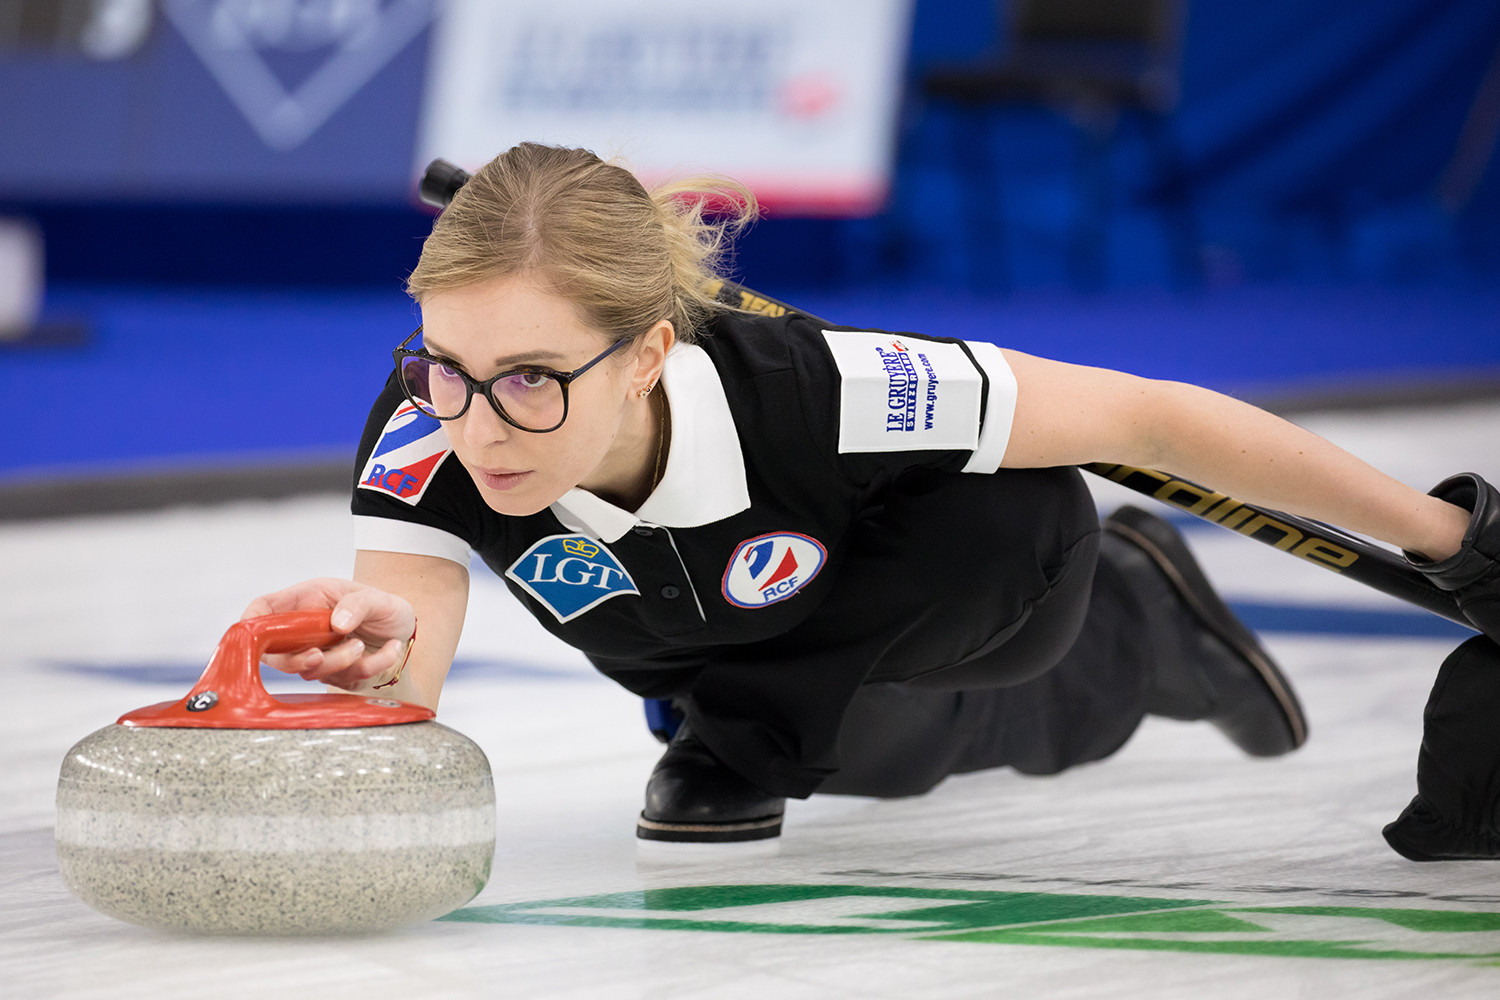 RCF go top of World Women's Curling Championship standings with win over Canada